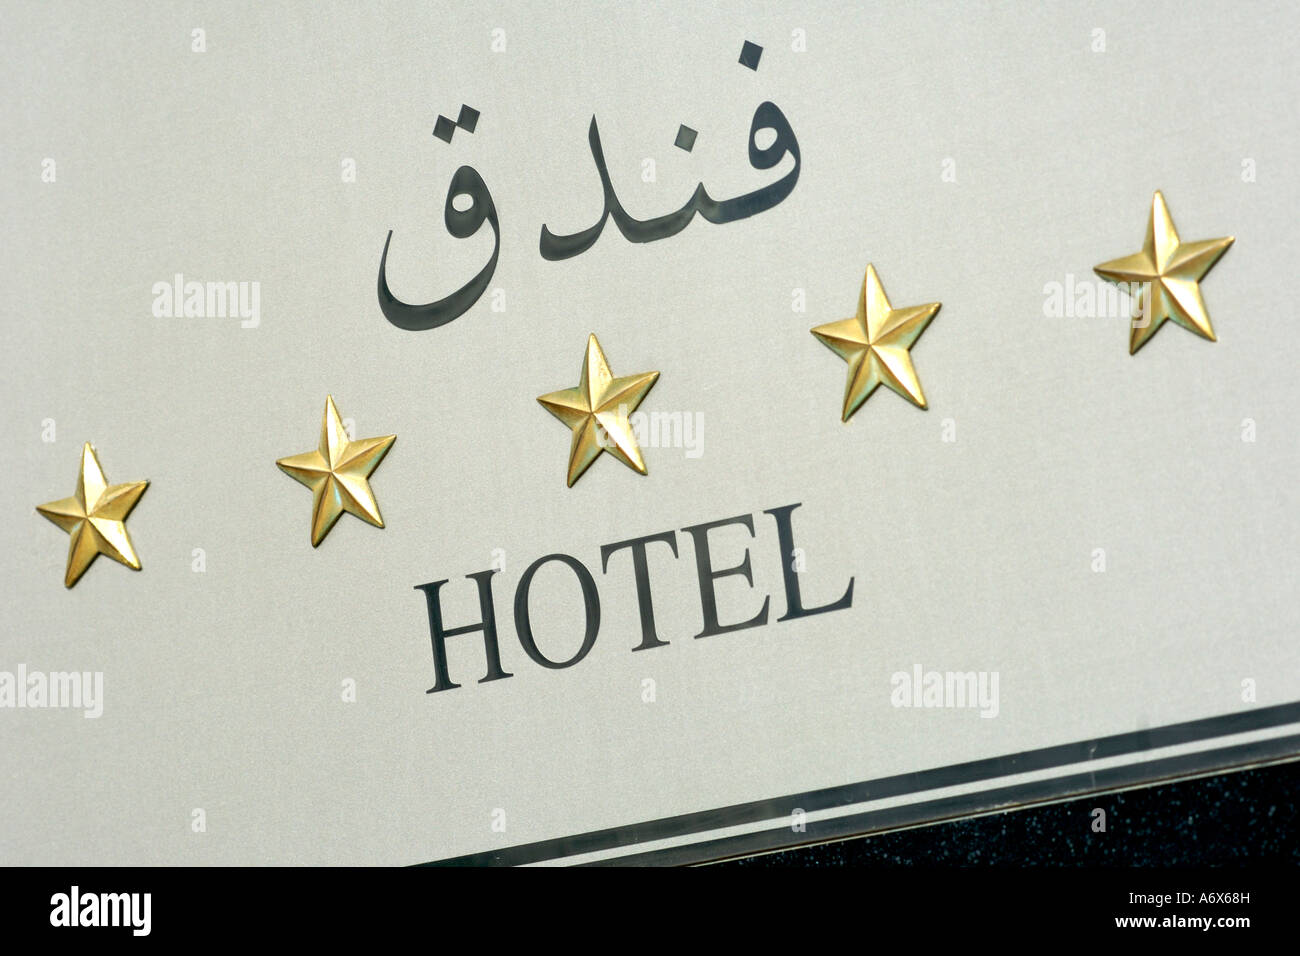 Sign for a 5-star hotel in Dubai. - Stock Image